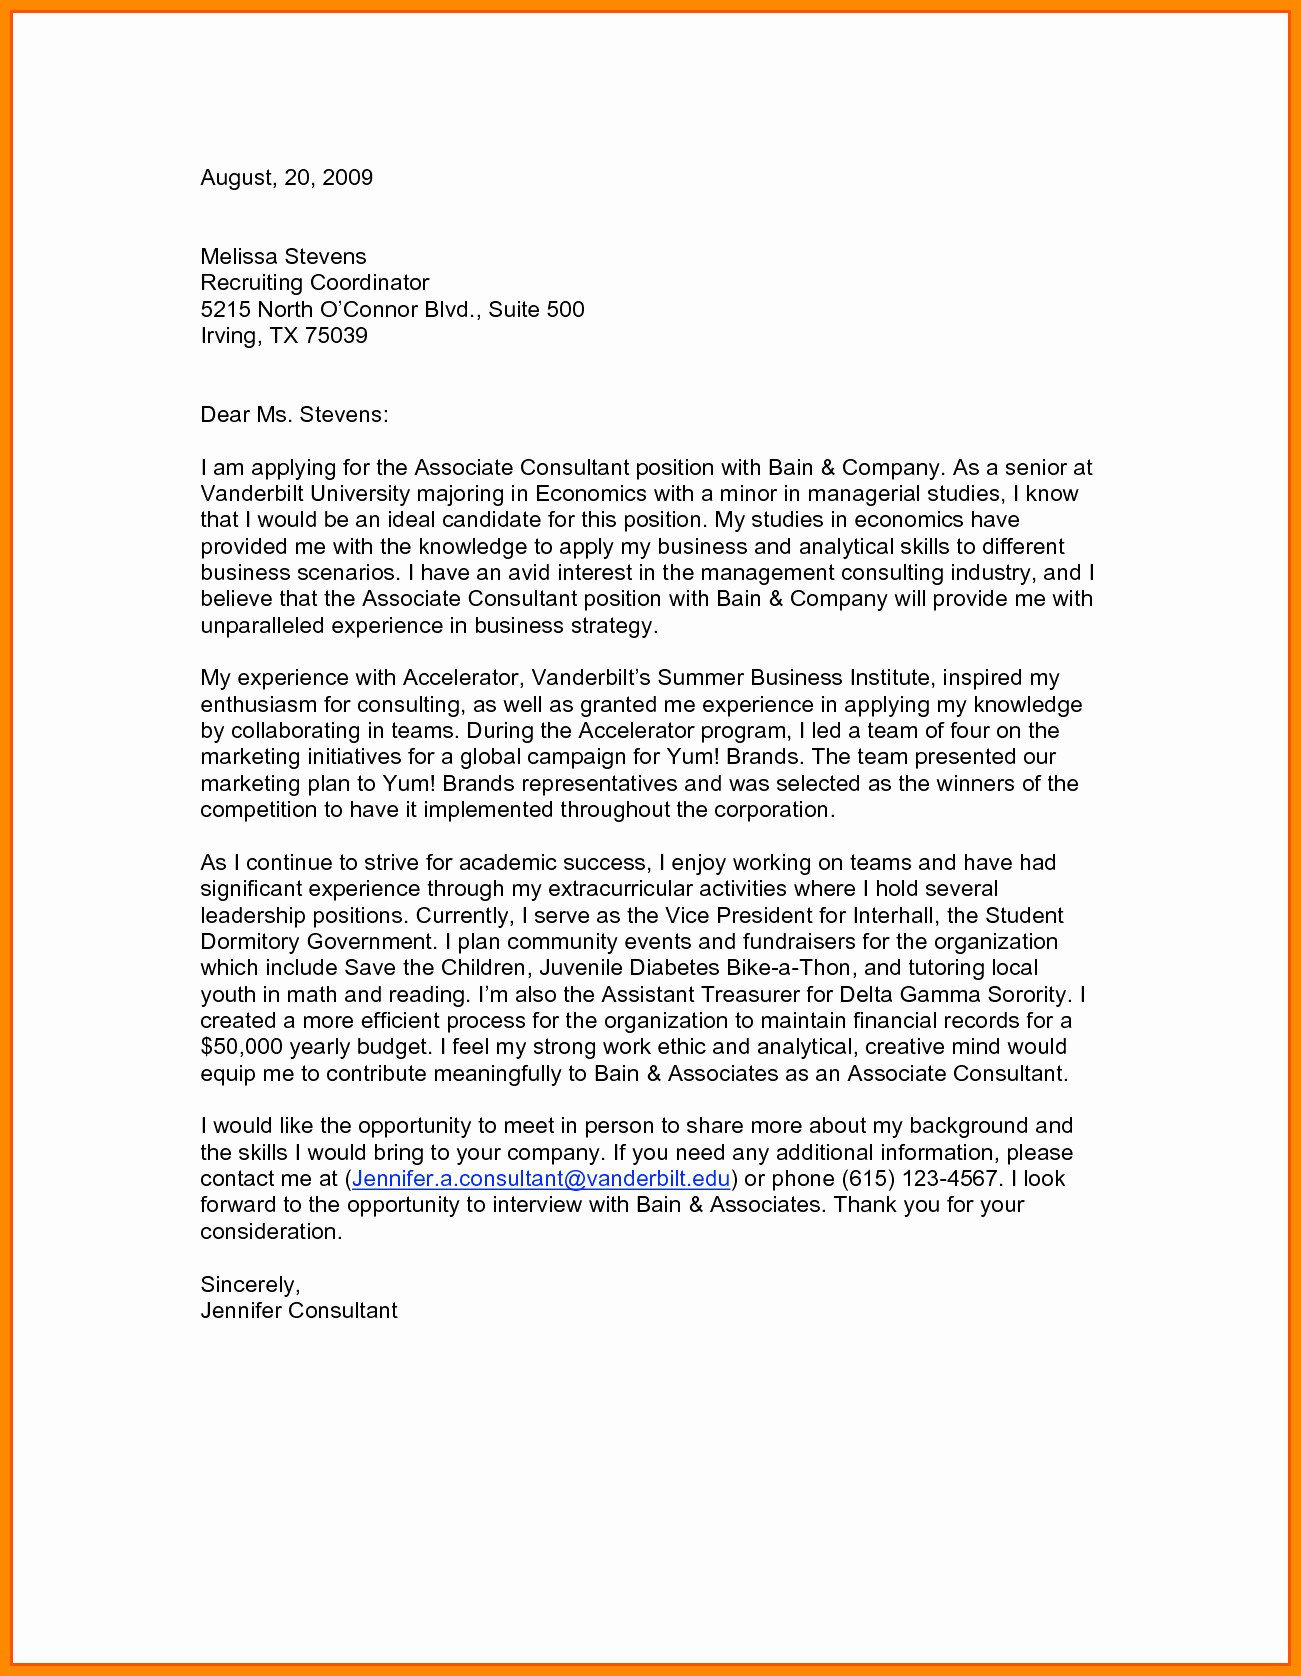 Resume for Interview - Great Cover Letter Exampl Valid Resume and Cover Letter Examples